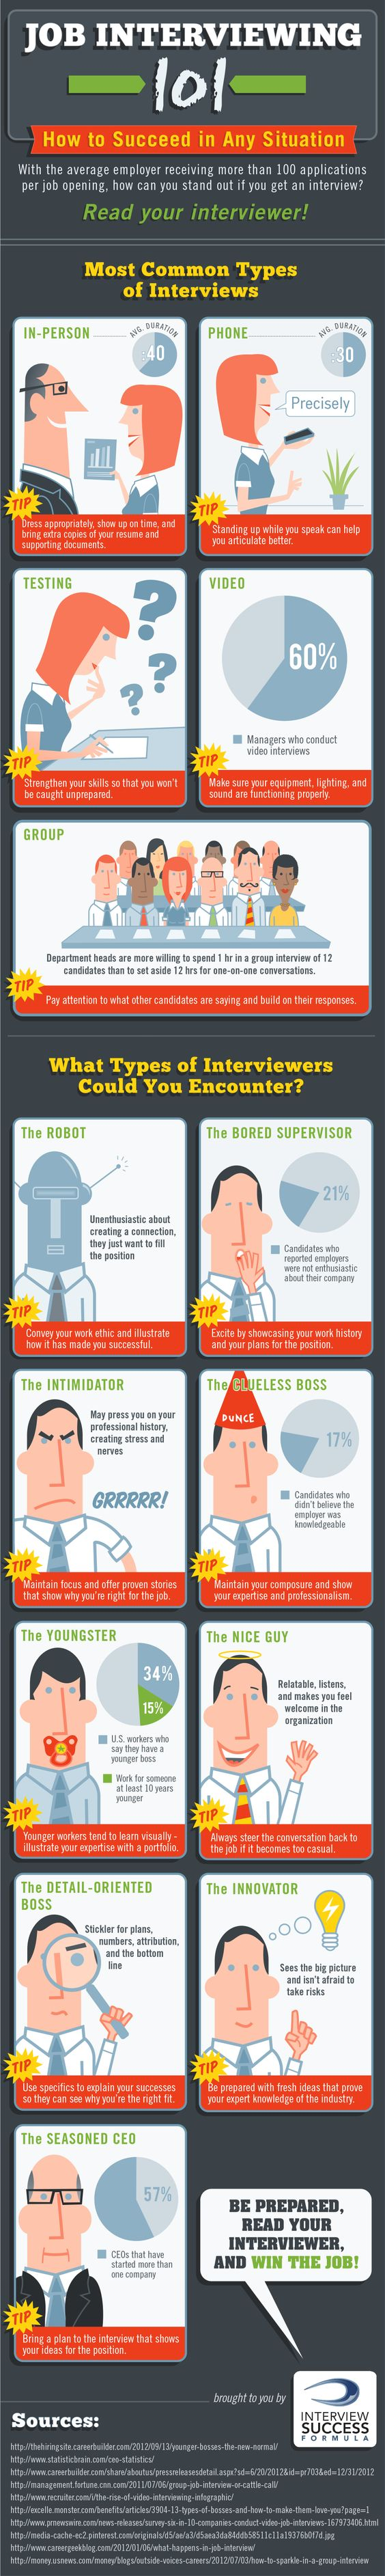 job interviewing 101 how to succeed in different situations job interviewing this infographic outlines the different types of interviews and the various versions of interviewers that come a long them